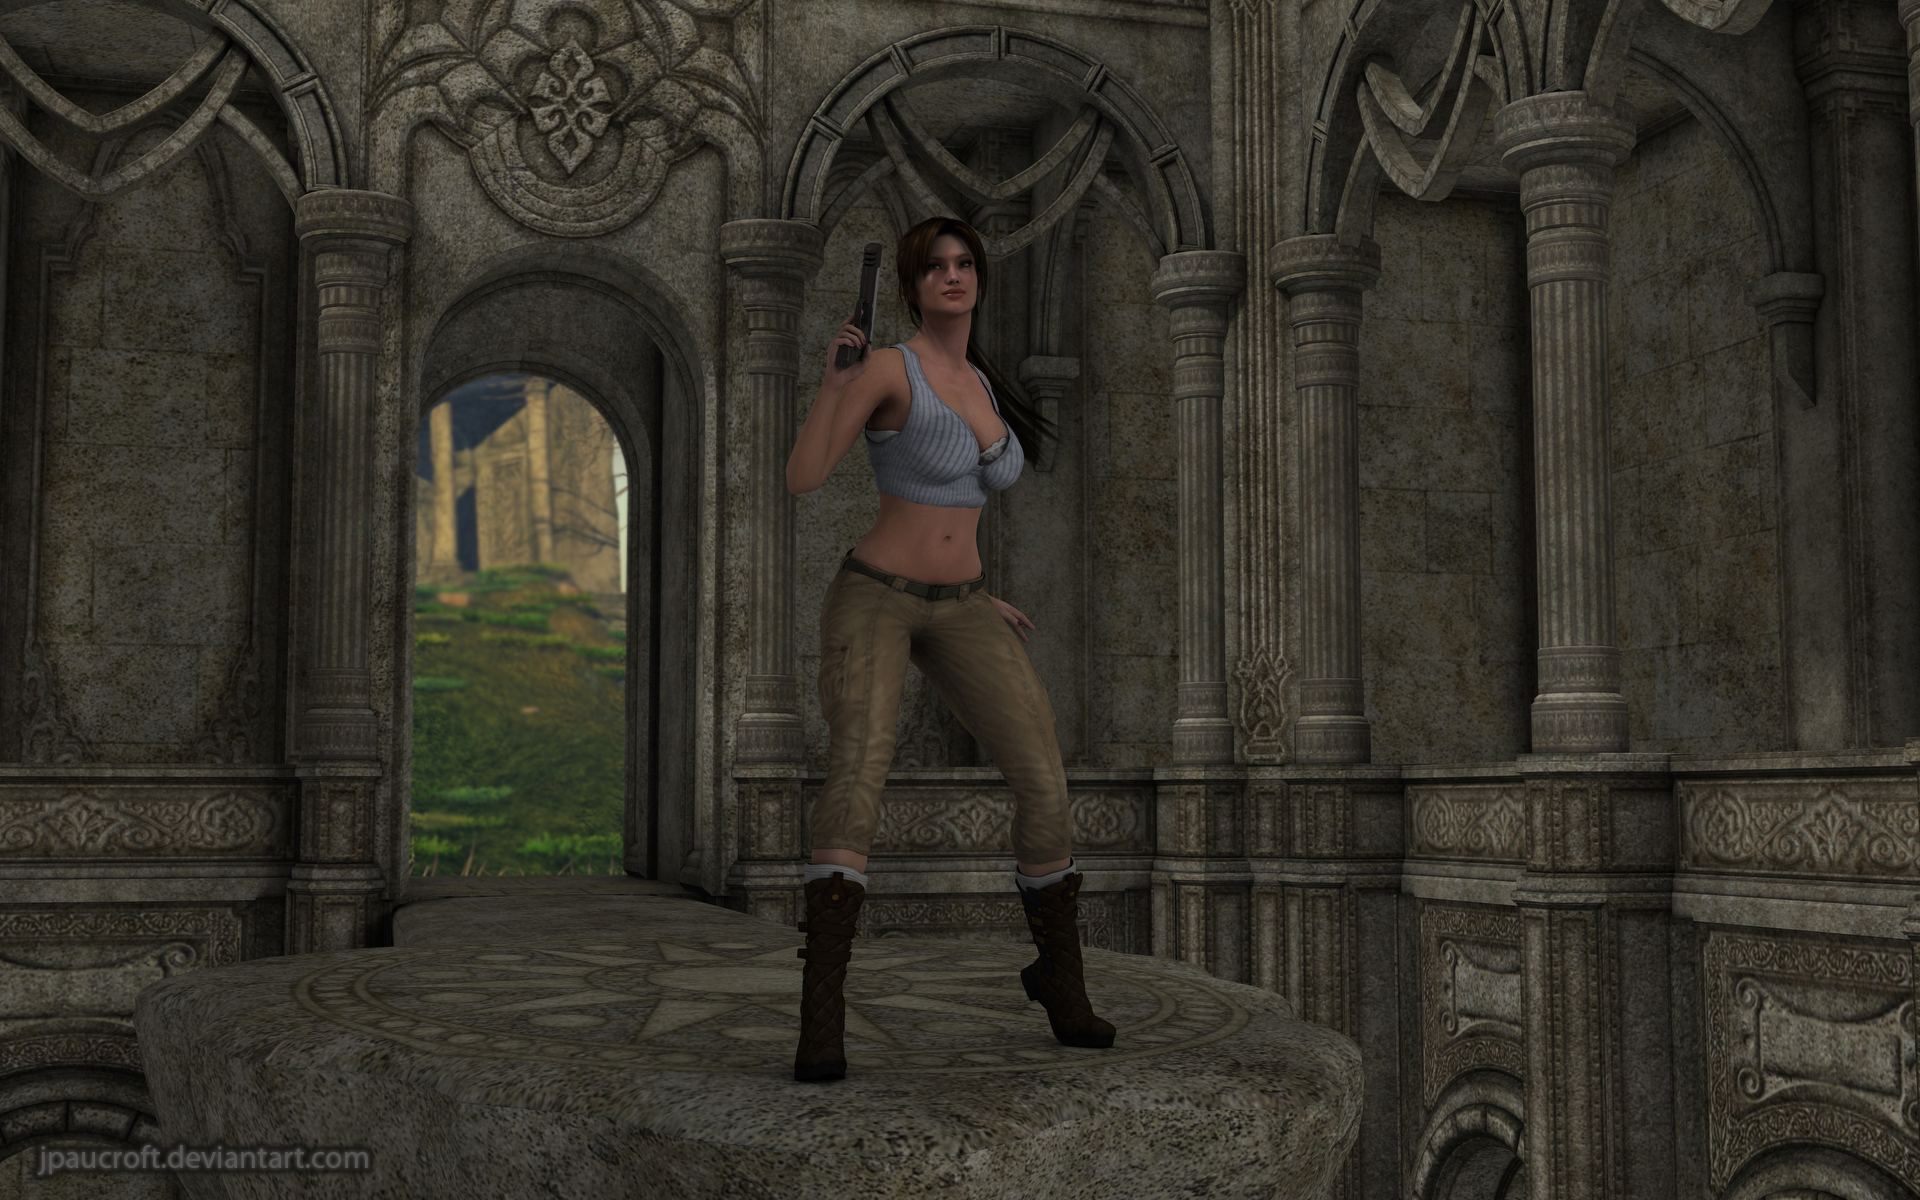 Lara and the ruins by JpauCroft